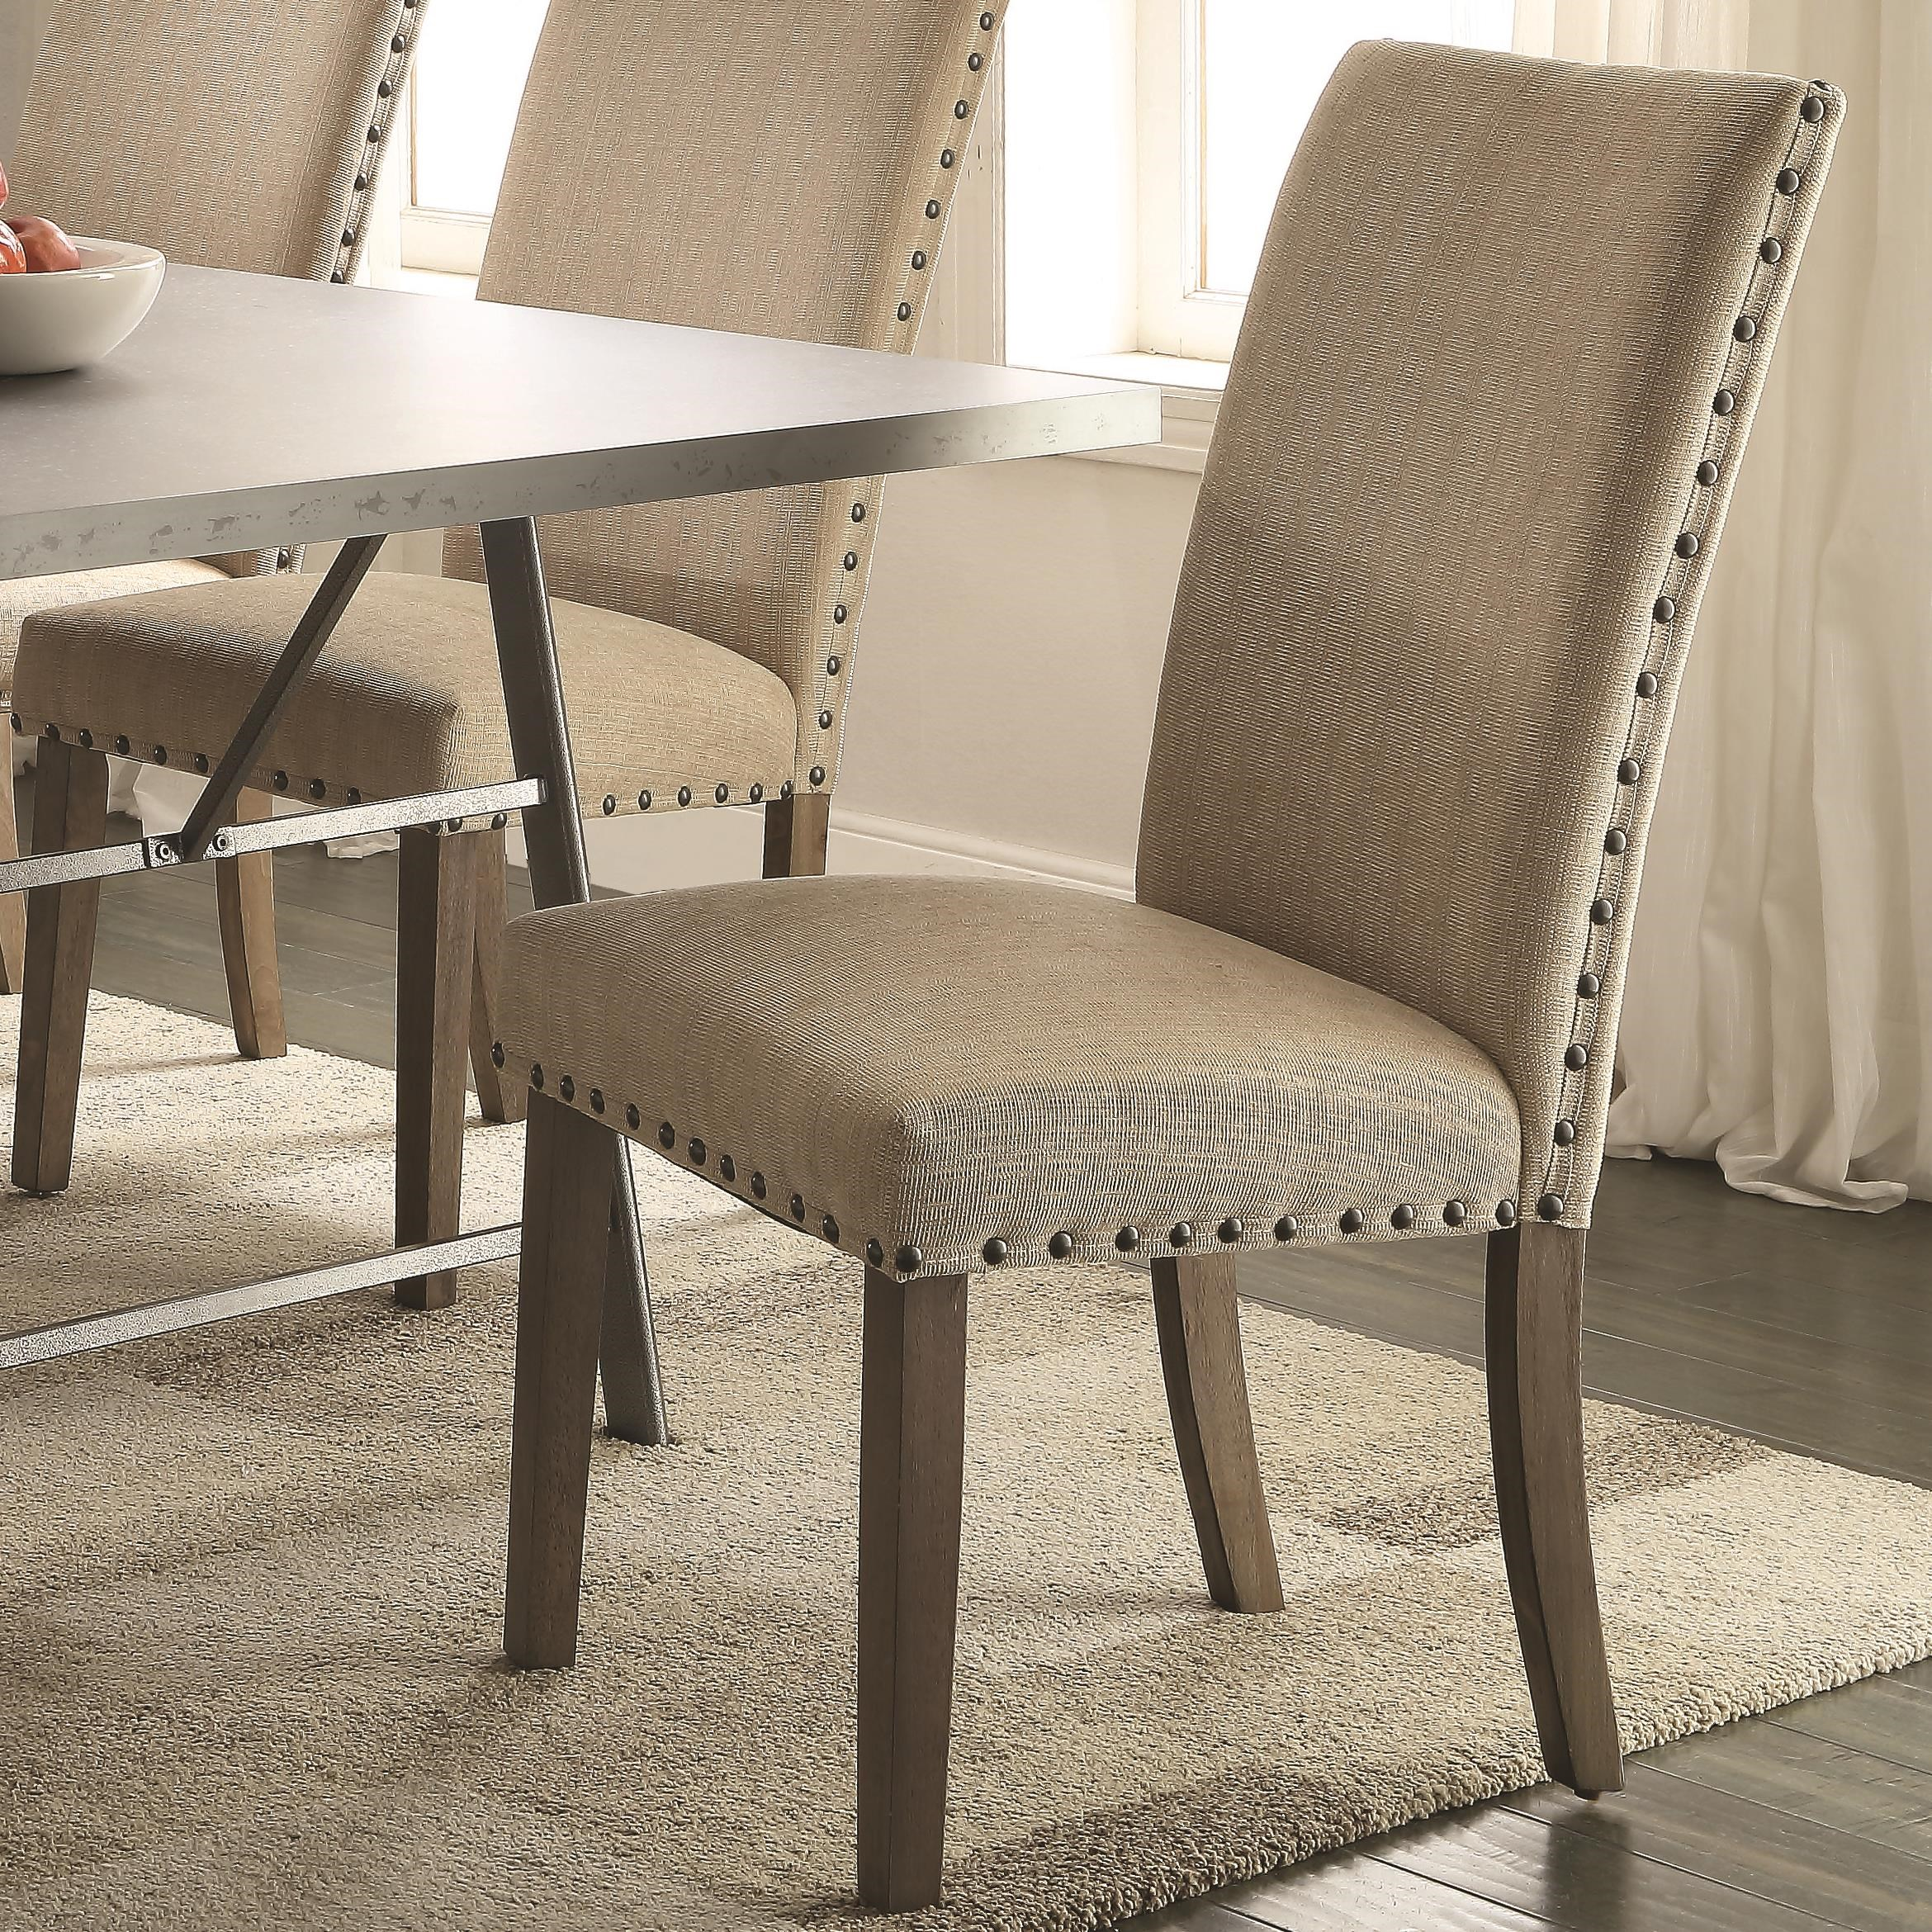 Delicieux Coaster Amherst Casual Parson Chair With Tan Fabric Upholstery And Nailhead  Trim